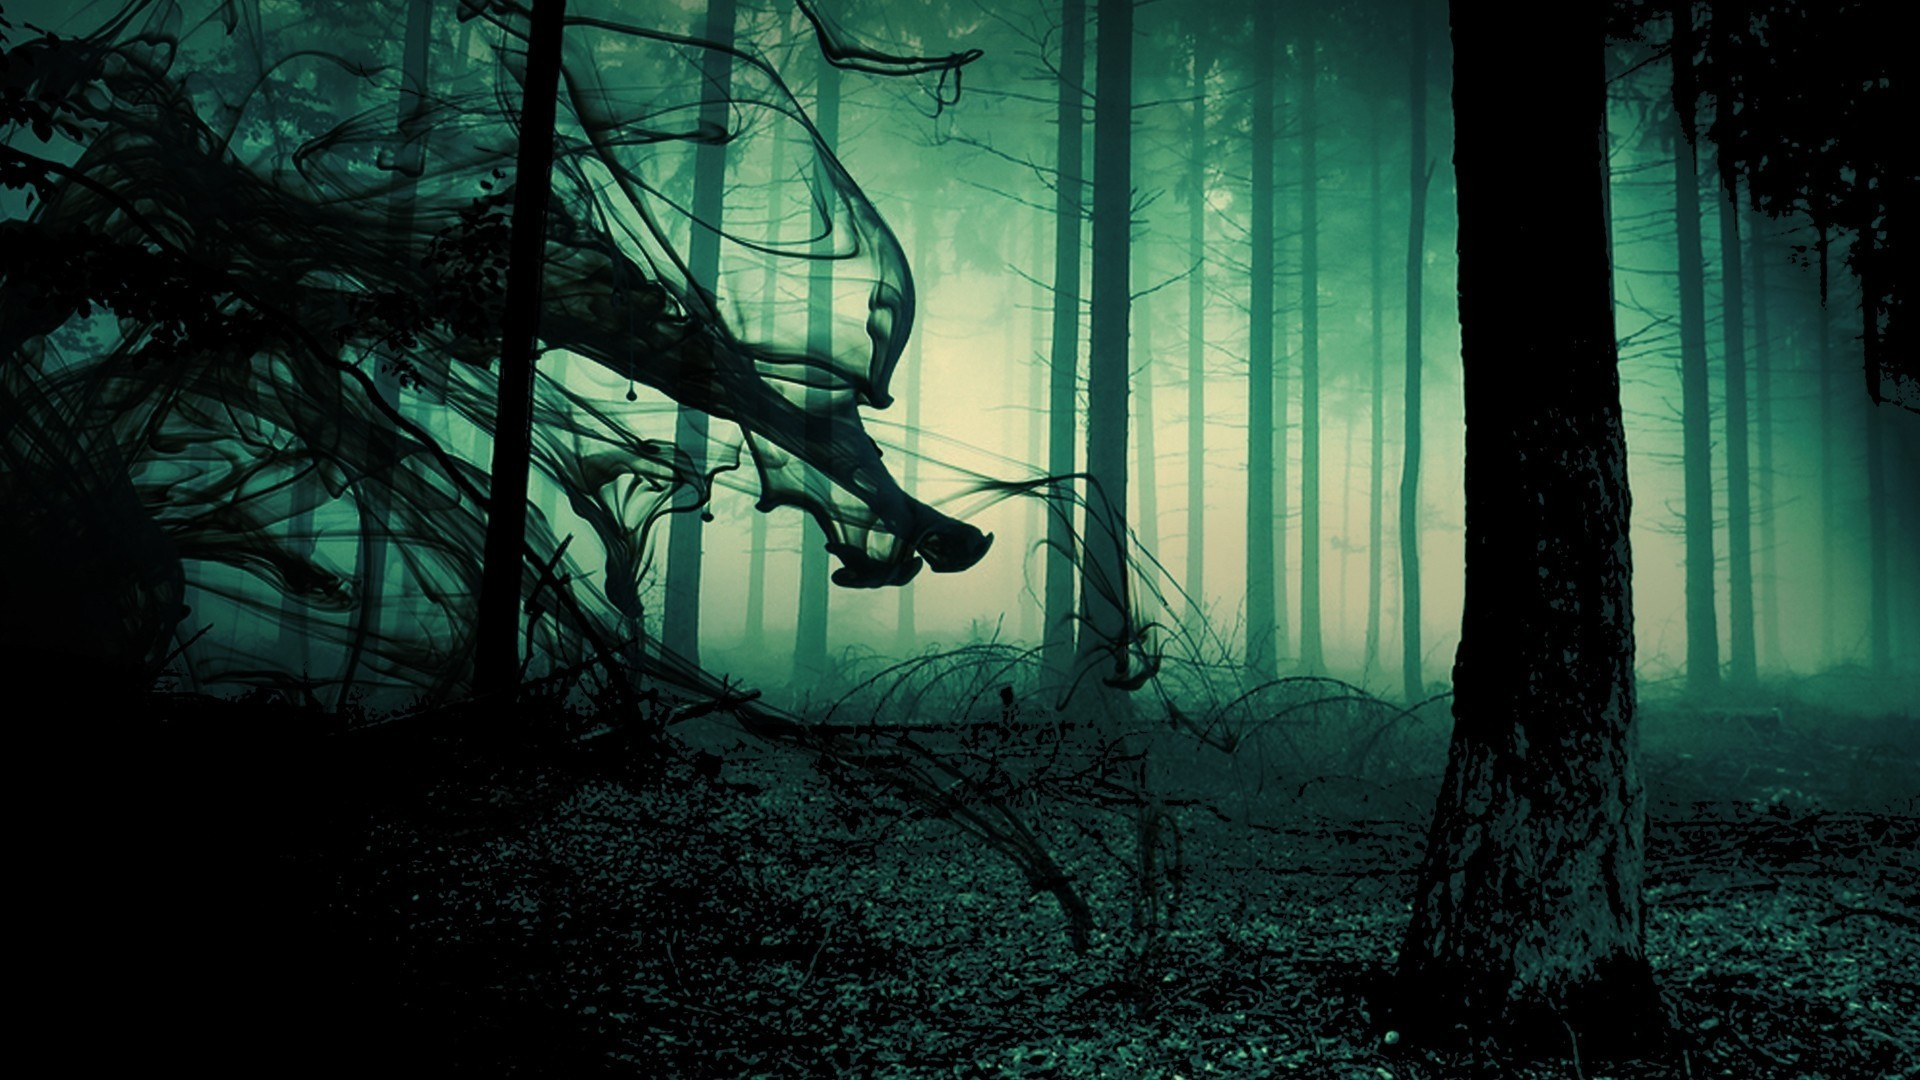 Res: 1920x1080, Creepy Dark Fog In Gothic Forest Wallpaper